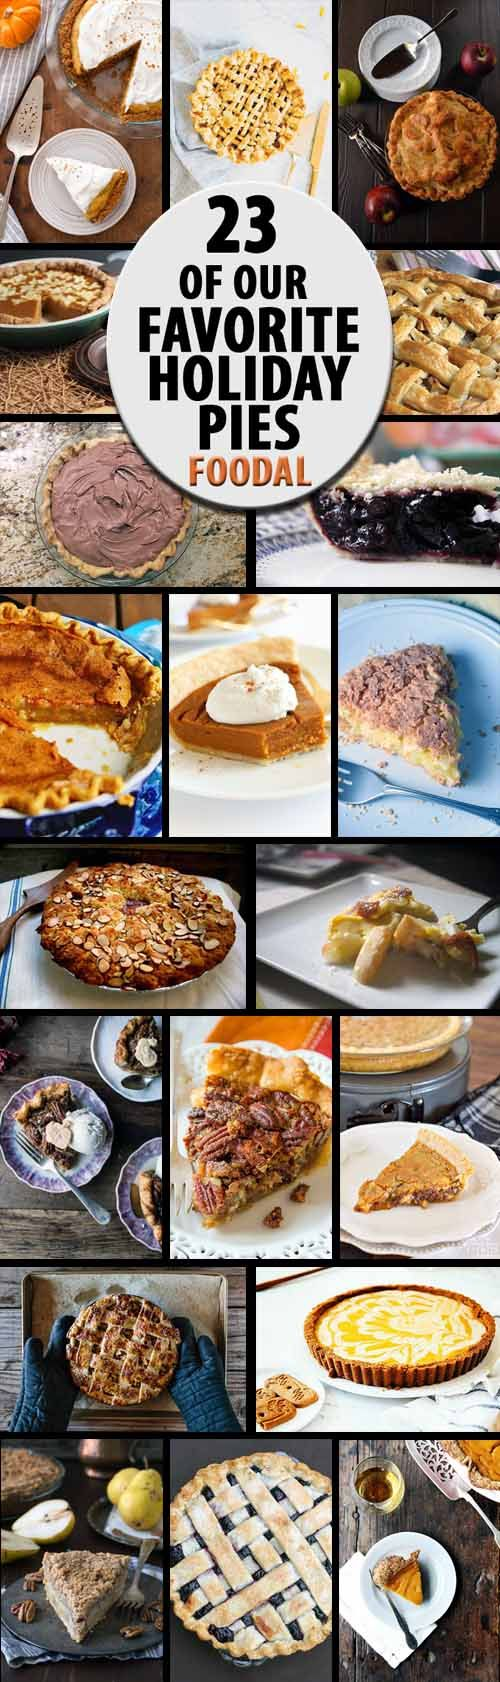 At the holidays, dessert wouldn't be complete without a slice of pie. From apple and pumpkin to custard and banana cream, we share our favorite pies from around the web. Plus recipes to cater to those with special diets, food allergies, and intolerances. Read more and get the recipes now on Foodal: http://foodal.com/recipes/desserts/holiday-pies-roundup/